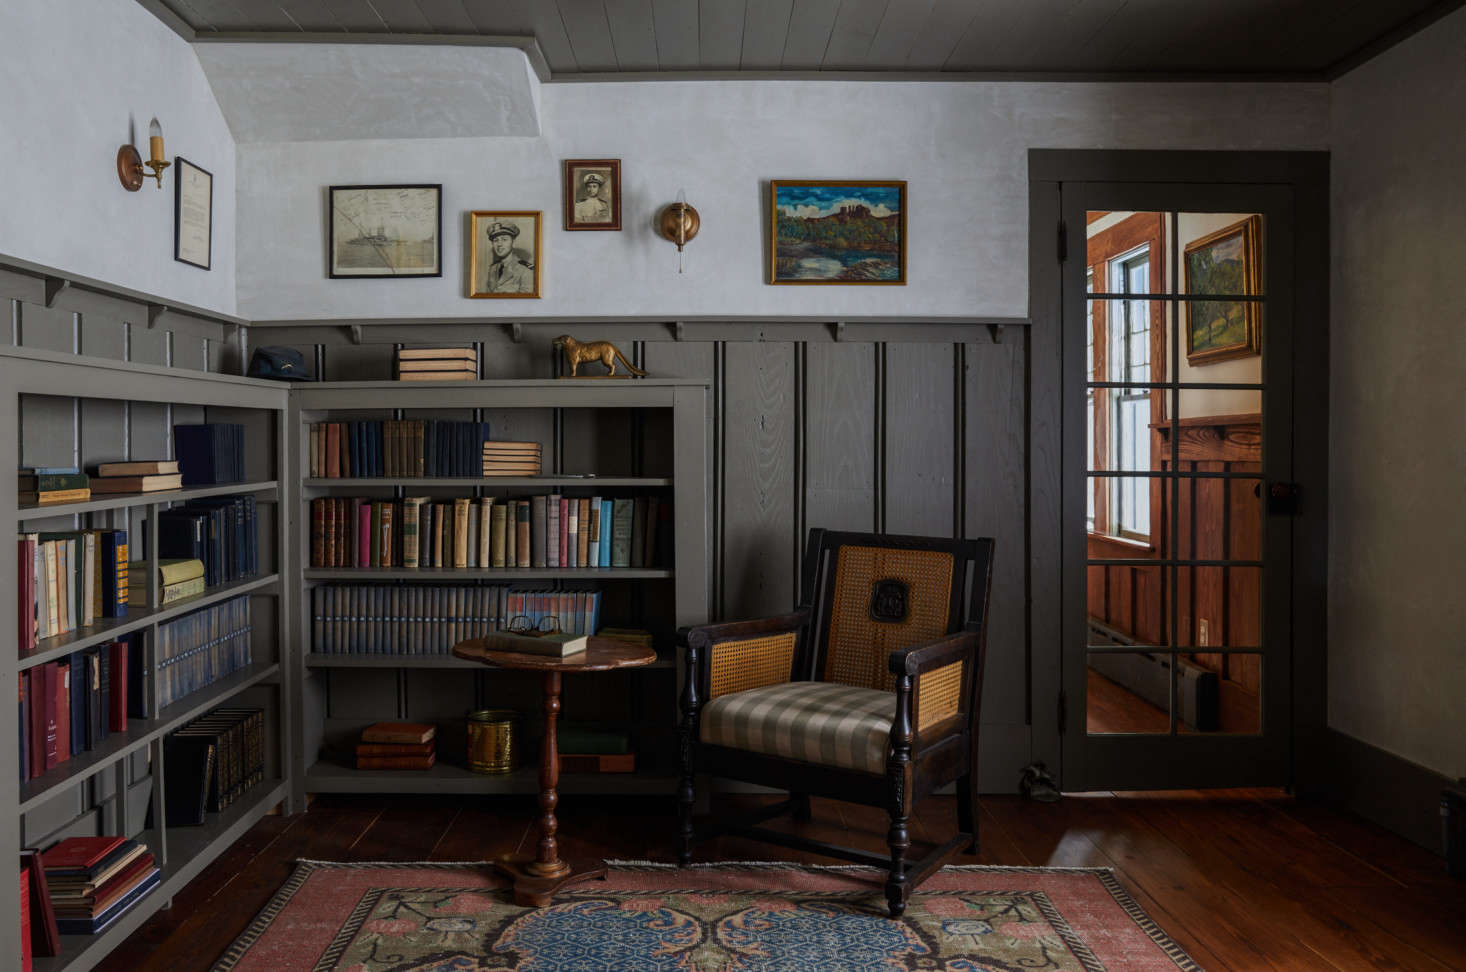 When the couple purchased the home, they found many bits of ephemera, including old photos and books that now occupy the home's intimate library.